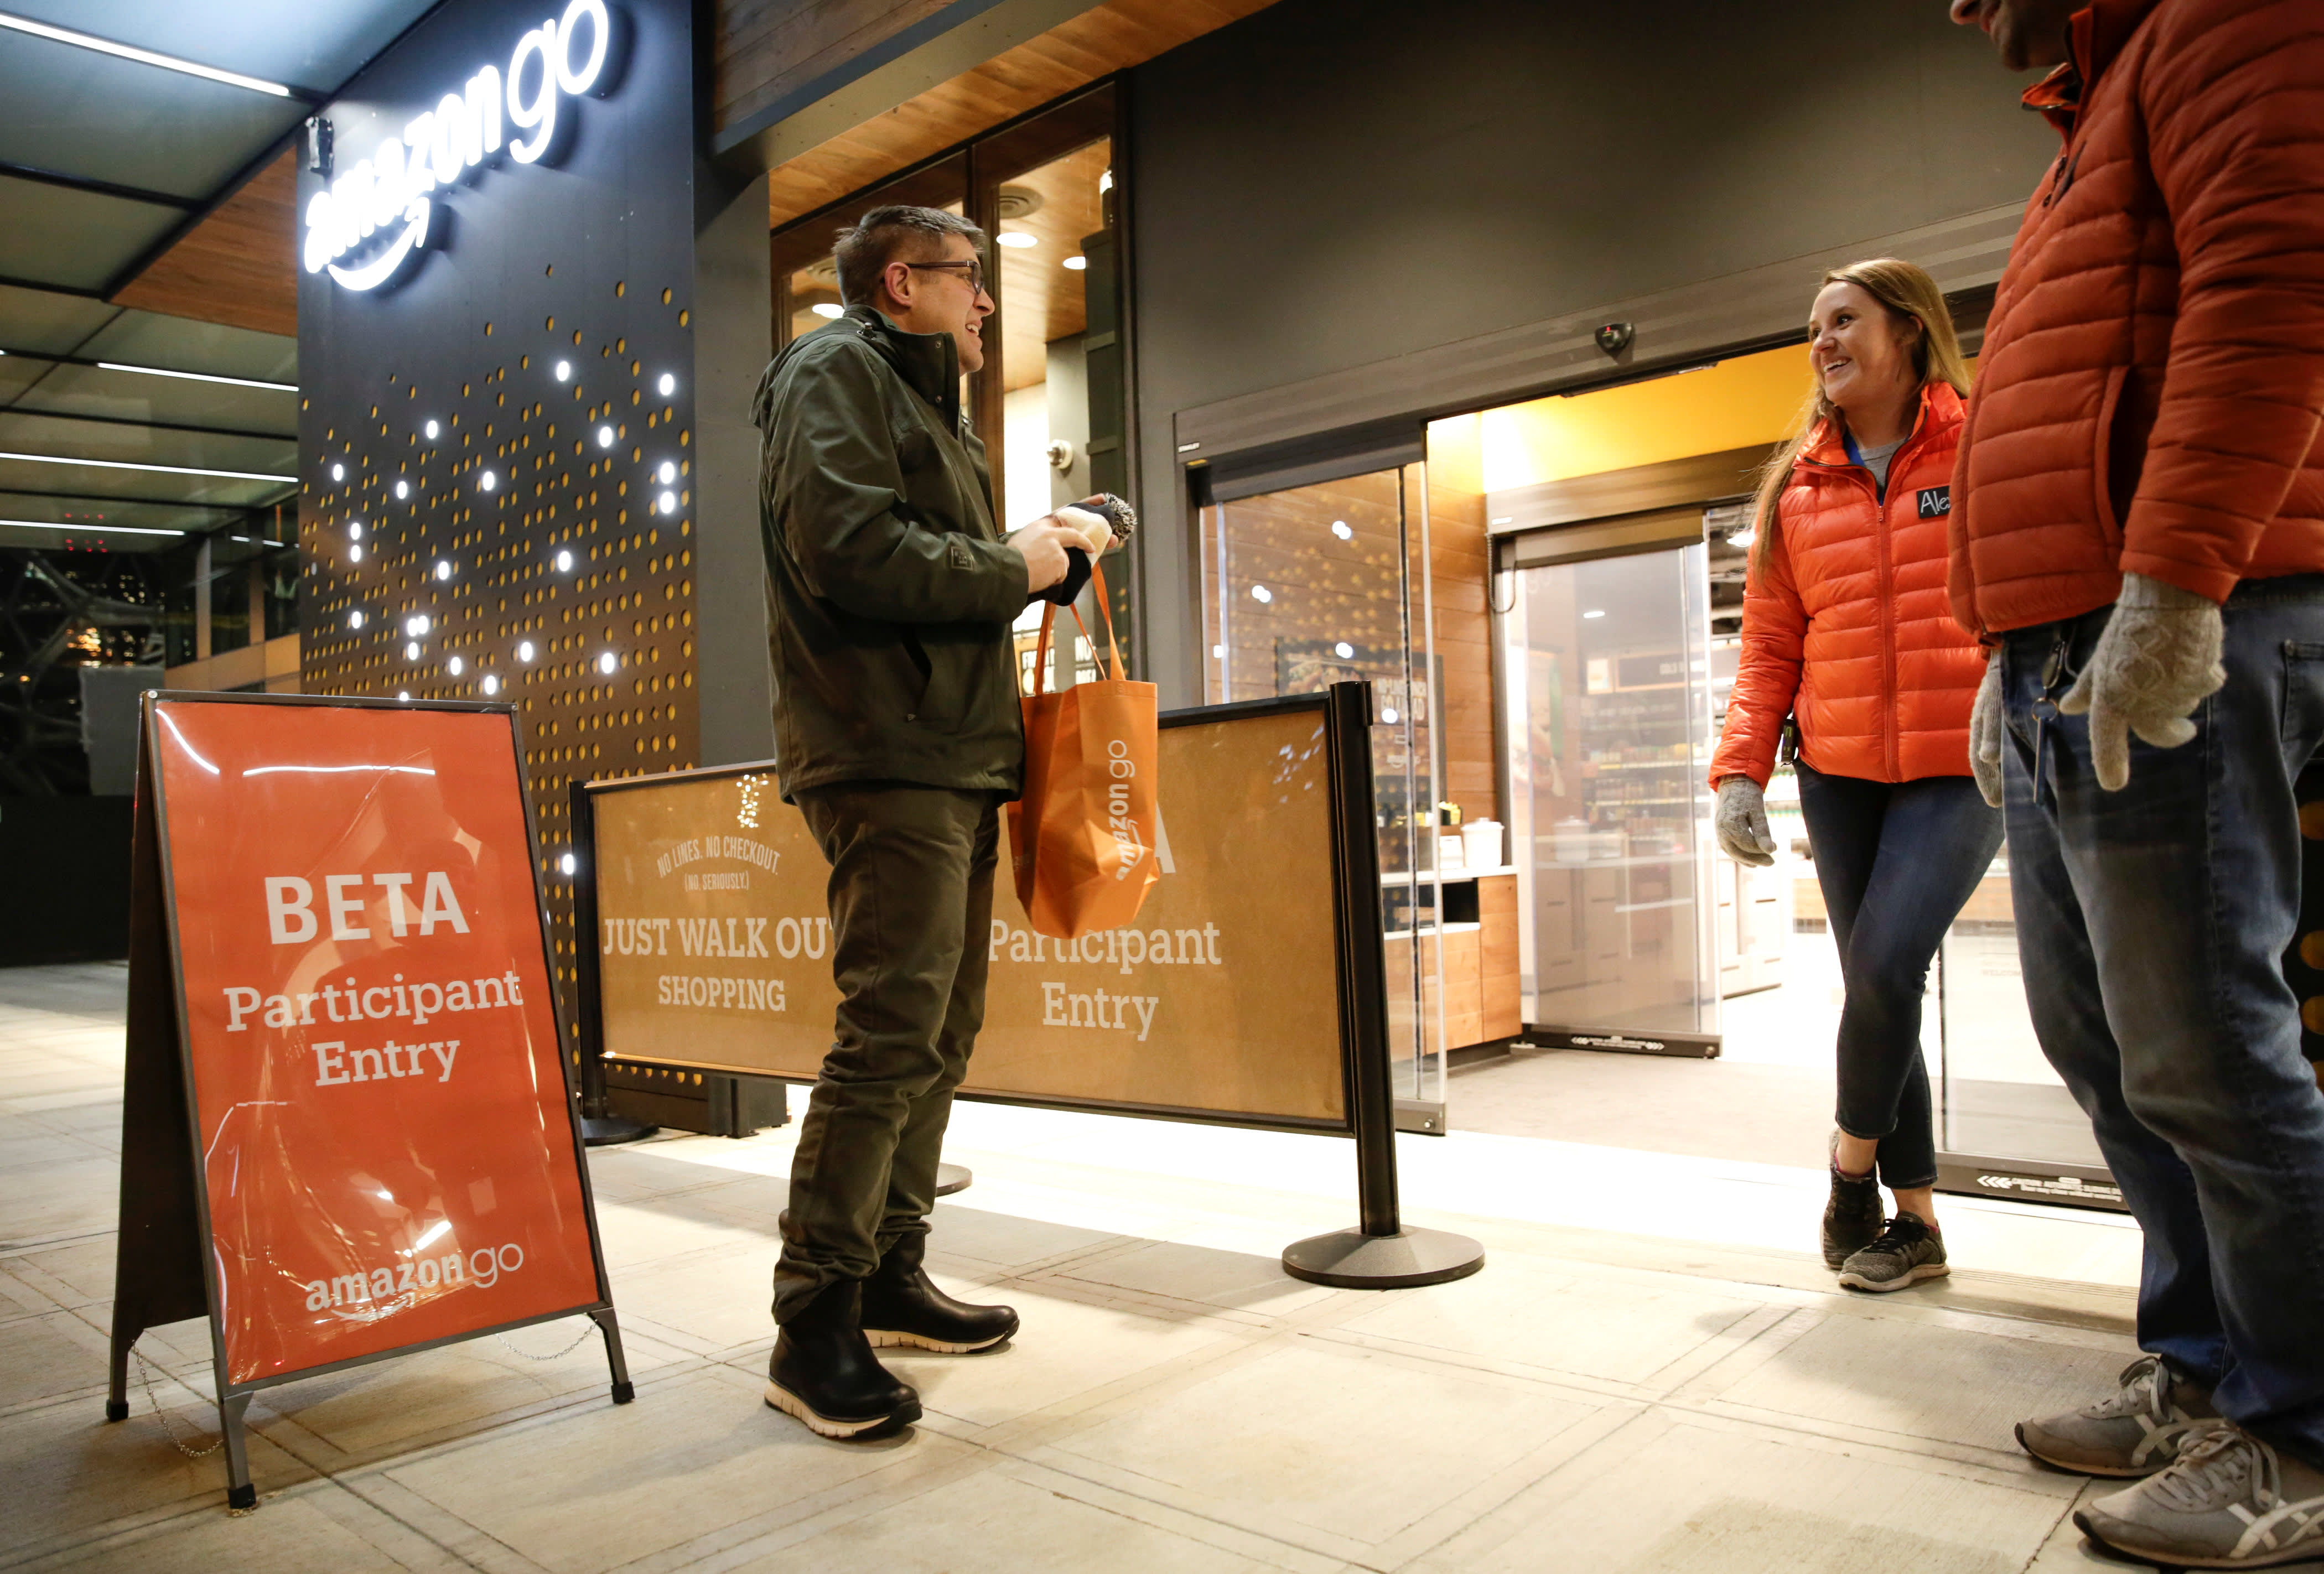 Will Amazon Go replace jobs? 'I don't think we can stop it